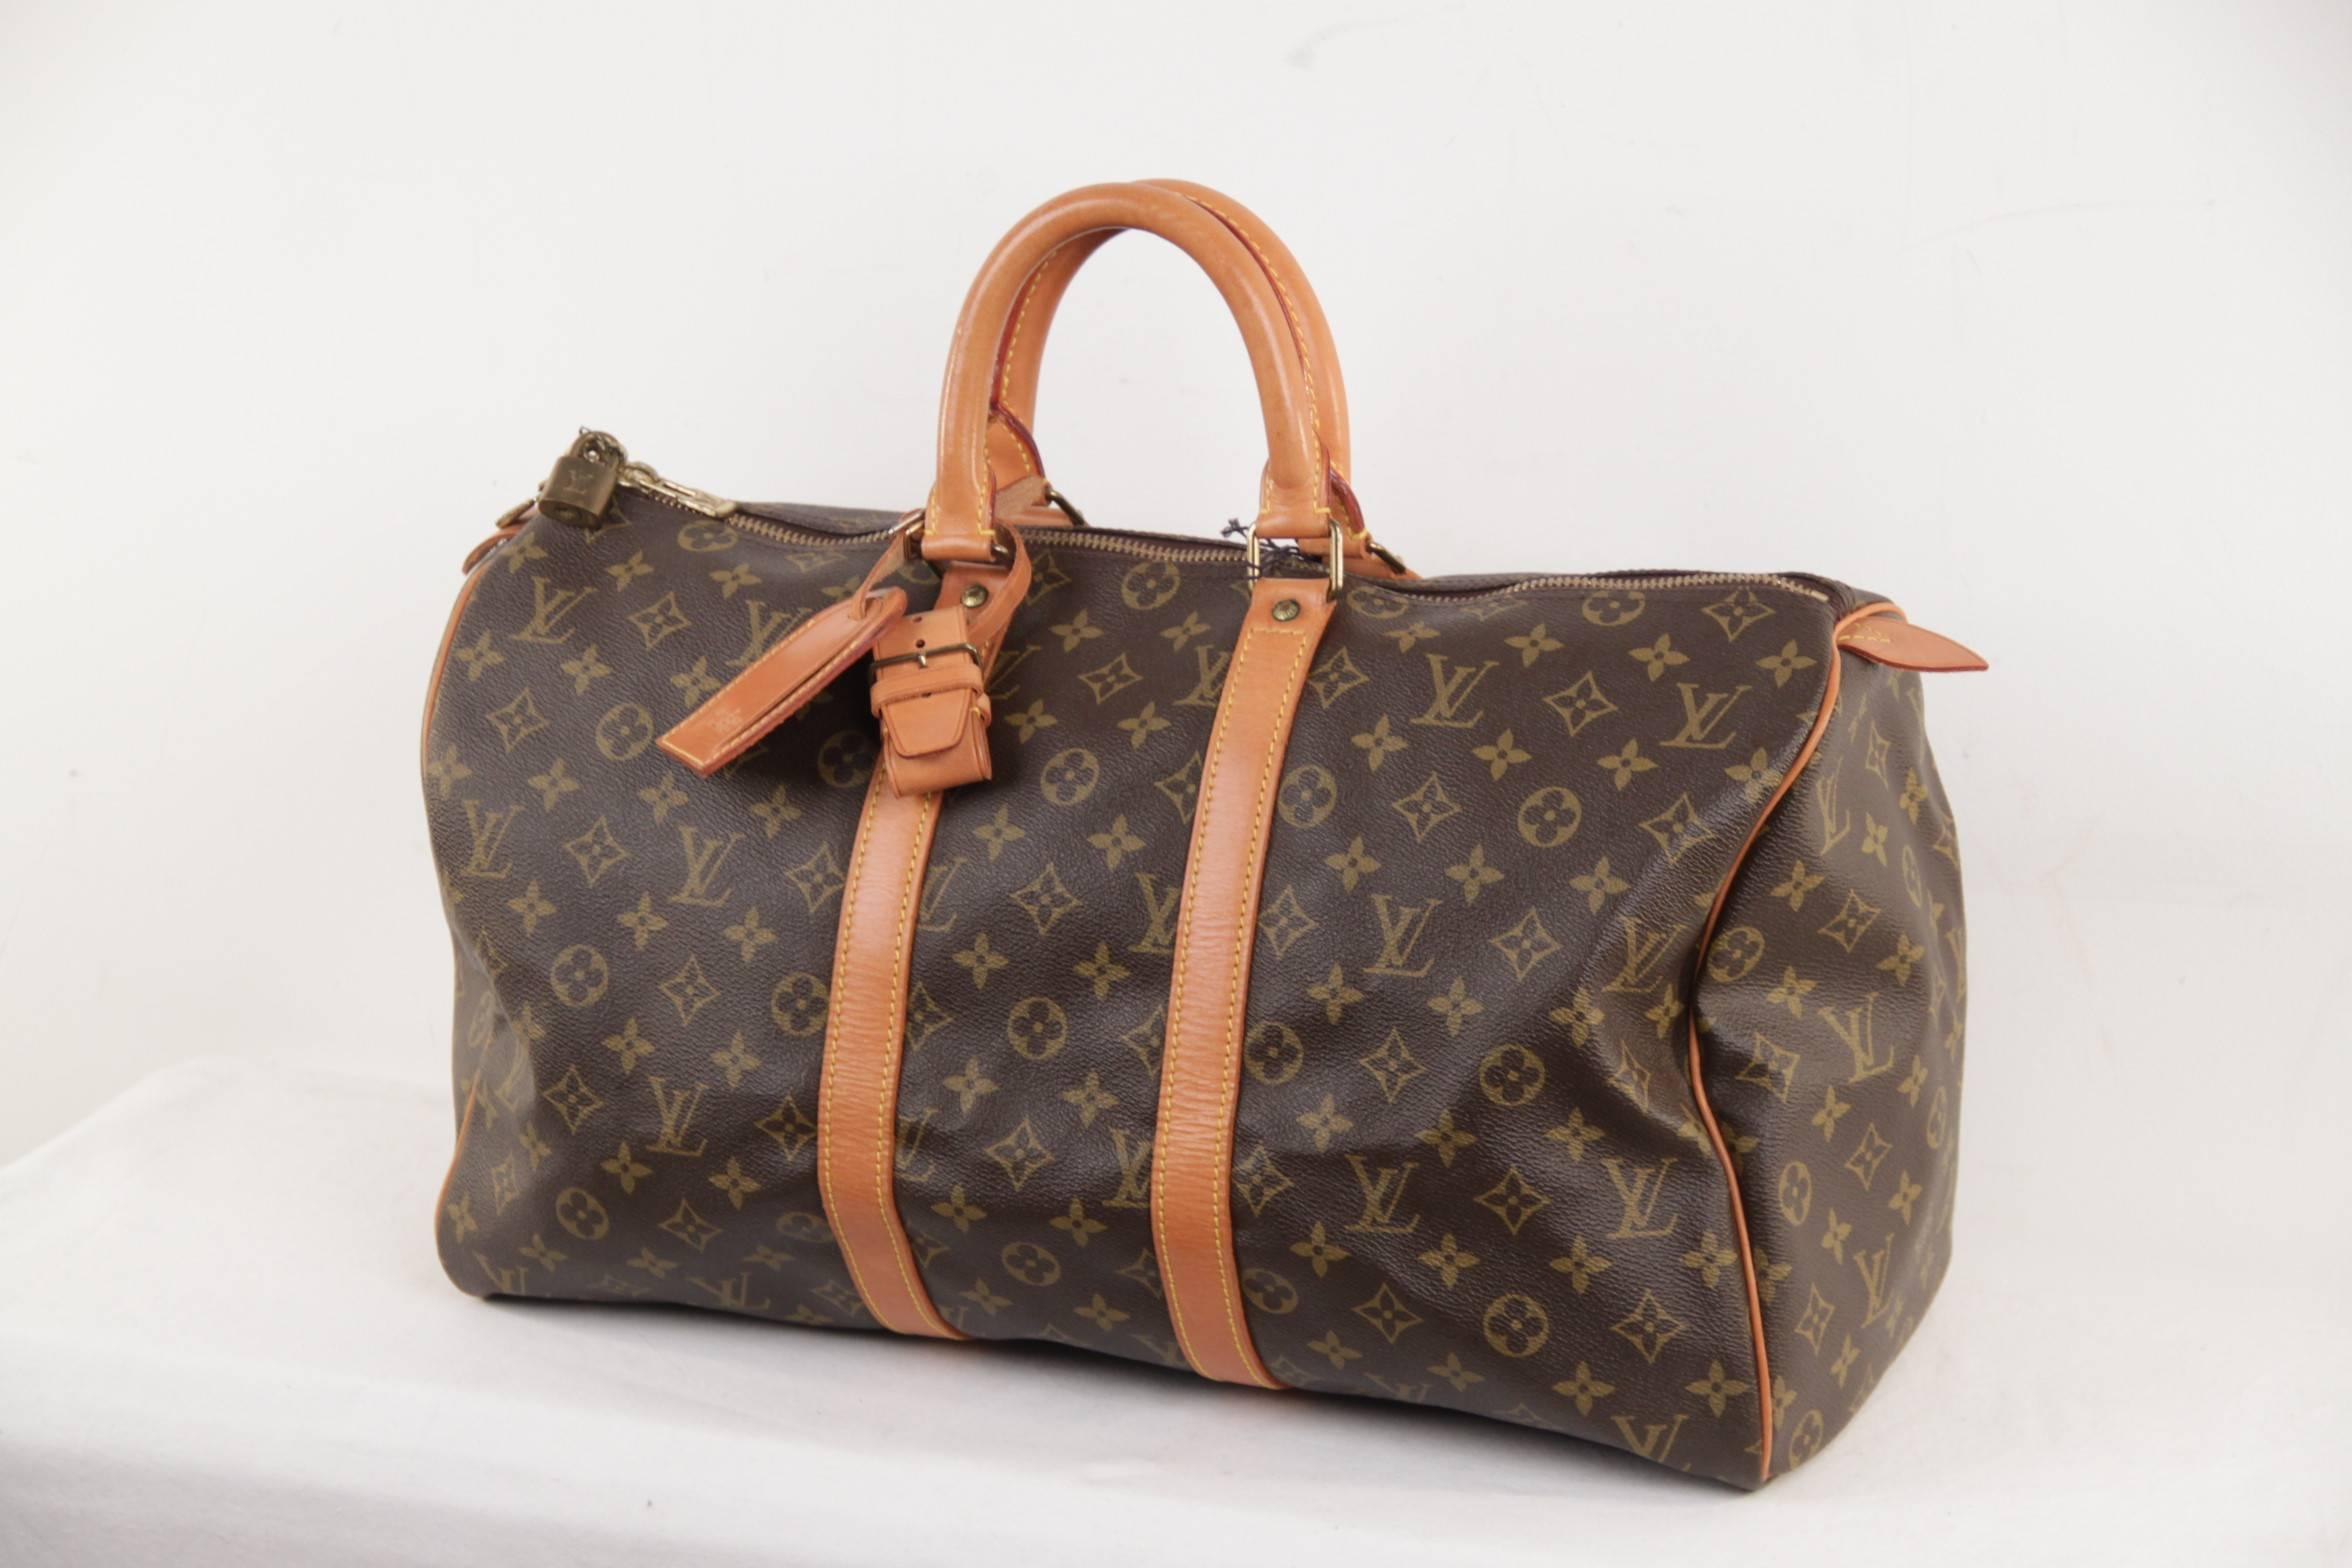 dbcf2f42ce7d LOUIS VUITTON Vintage Brown Monogram Canvas KEEPALL 45 Duffle Bag TRAVEL at  1stdibs